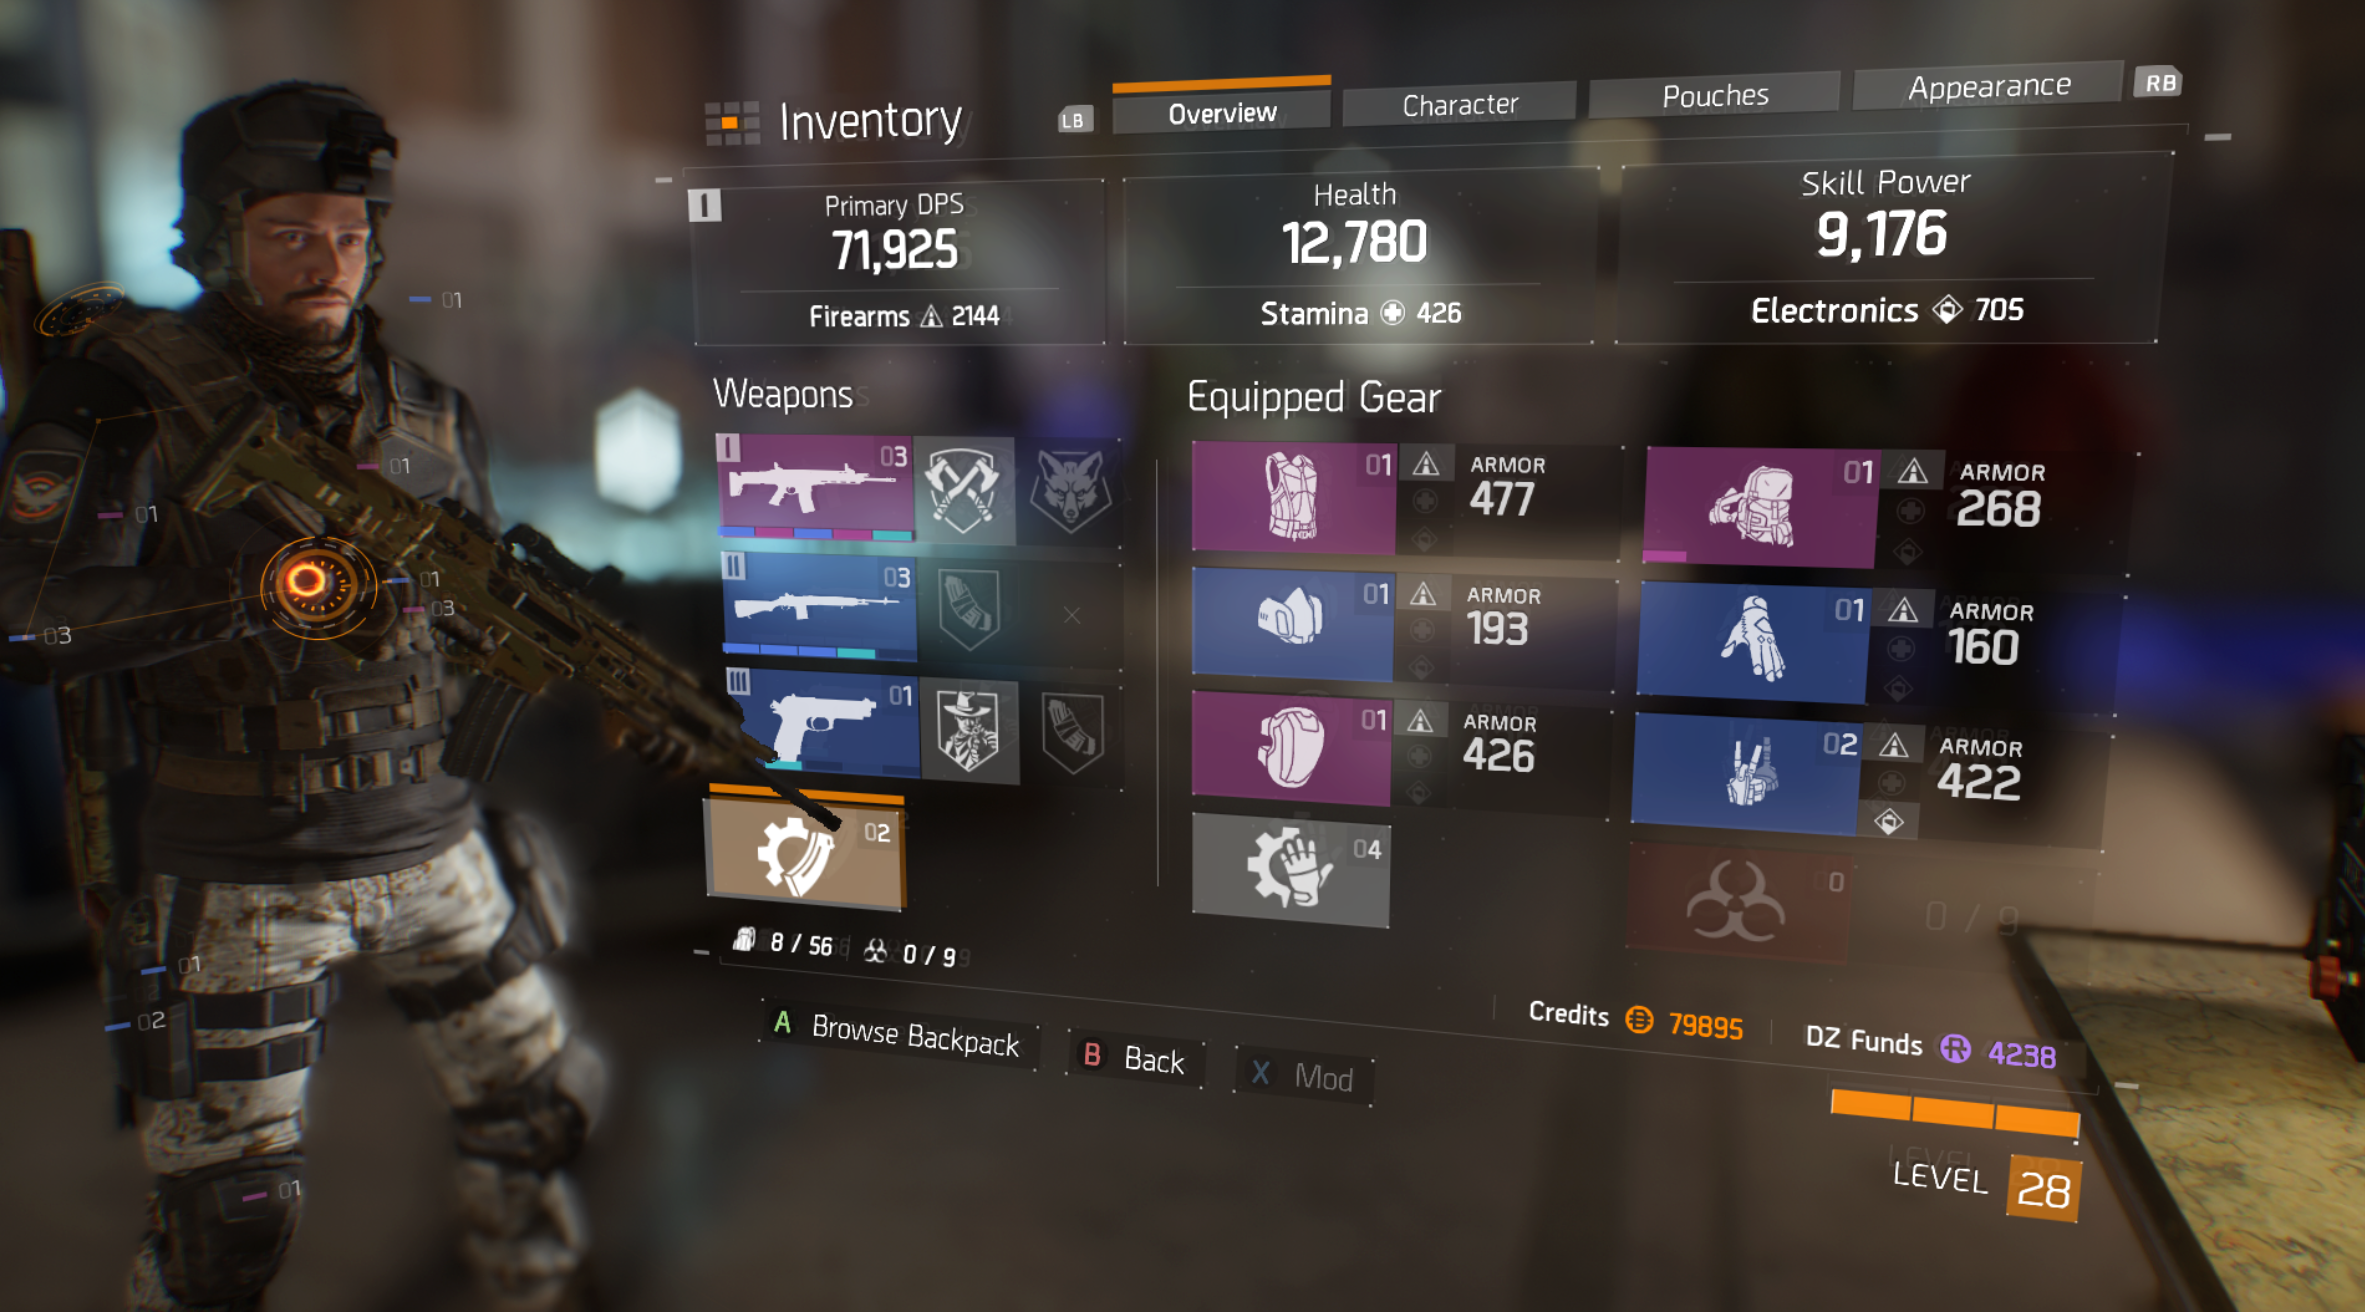 The Division charater inventory